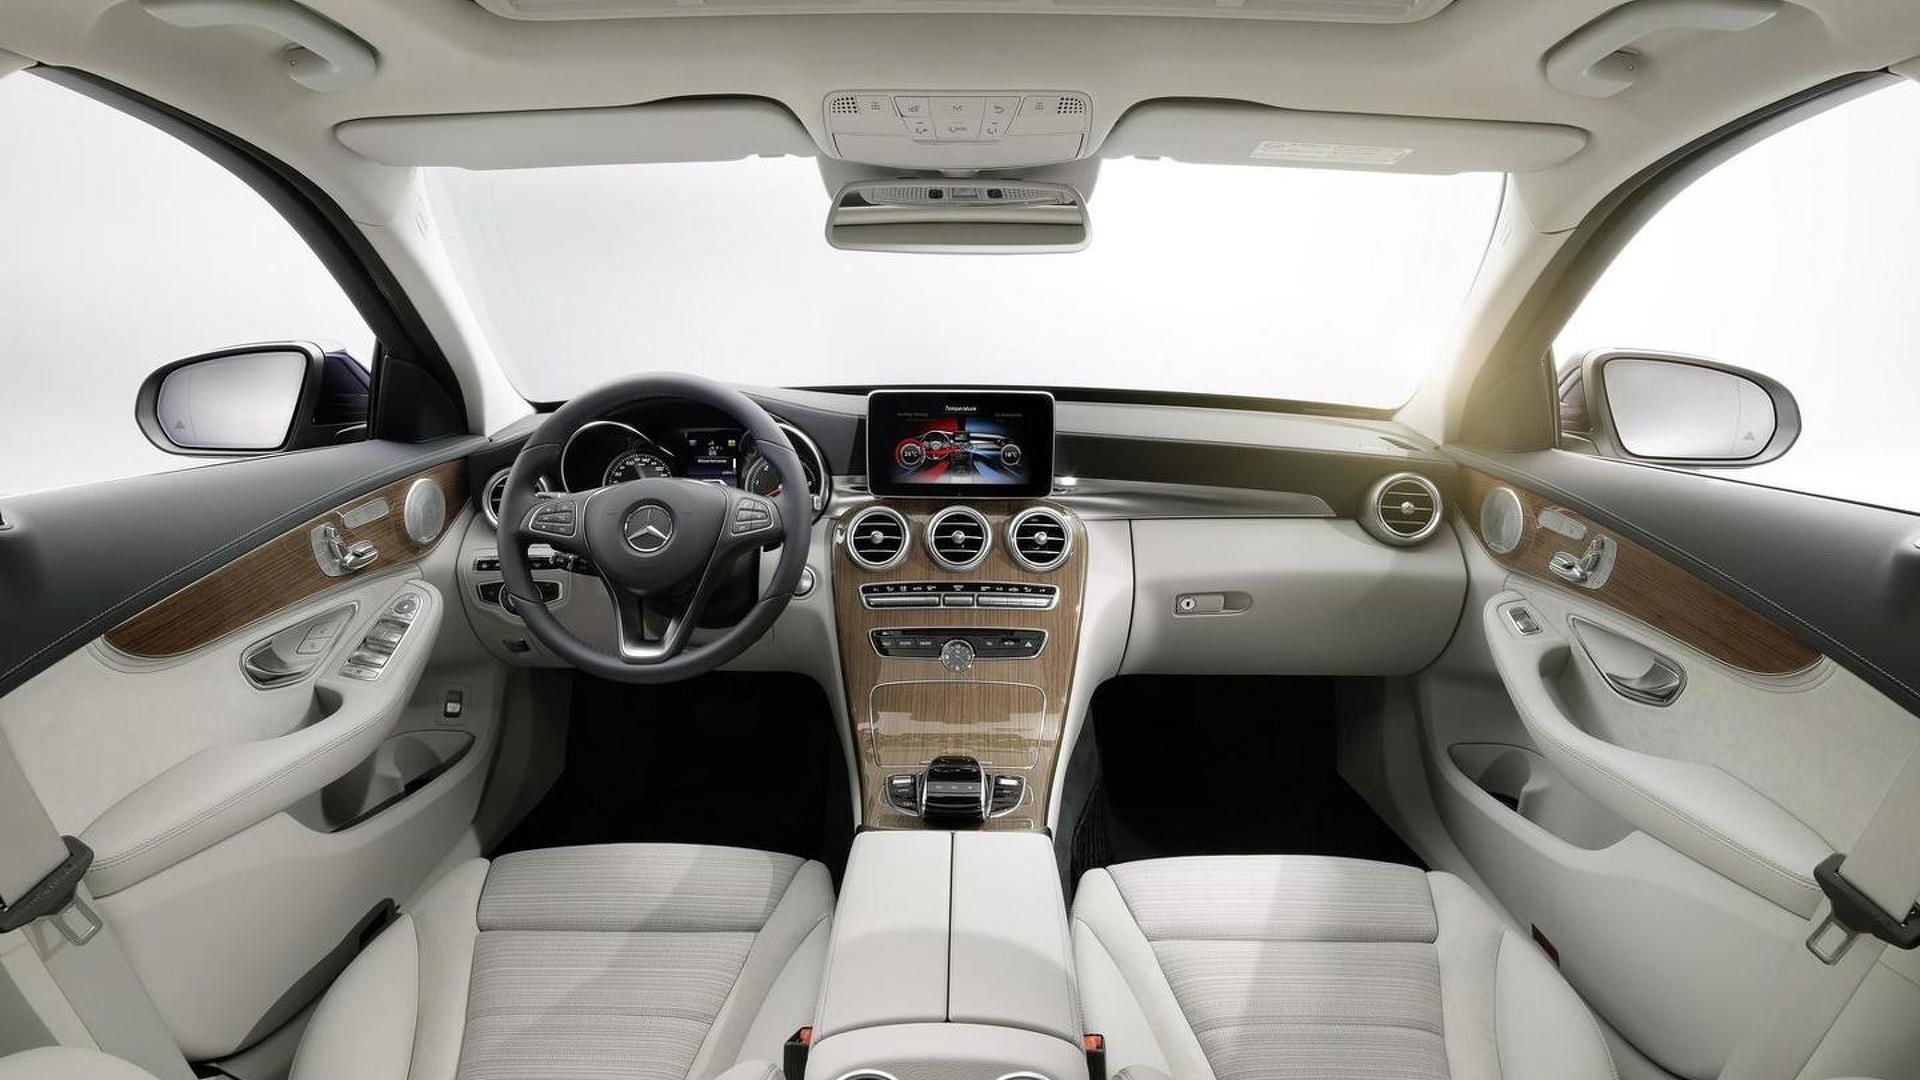 2014 Mercedes Benz C Class Officially Revealed With Three Engines And  AIRMATIC